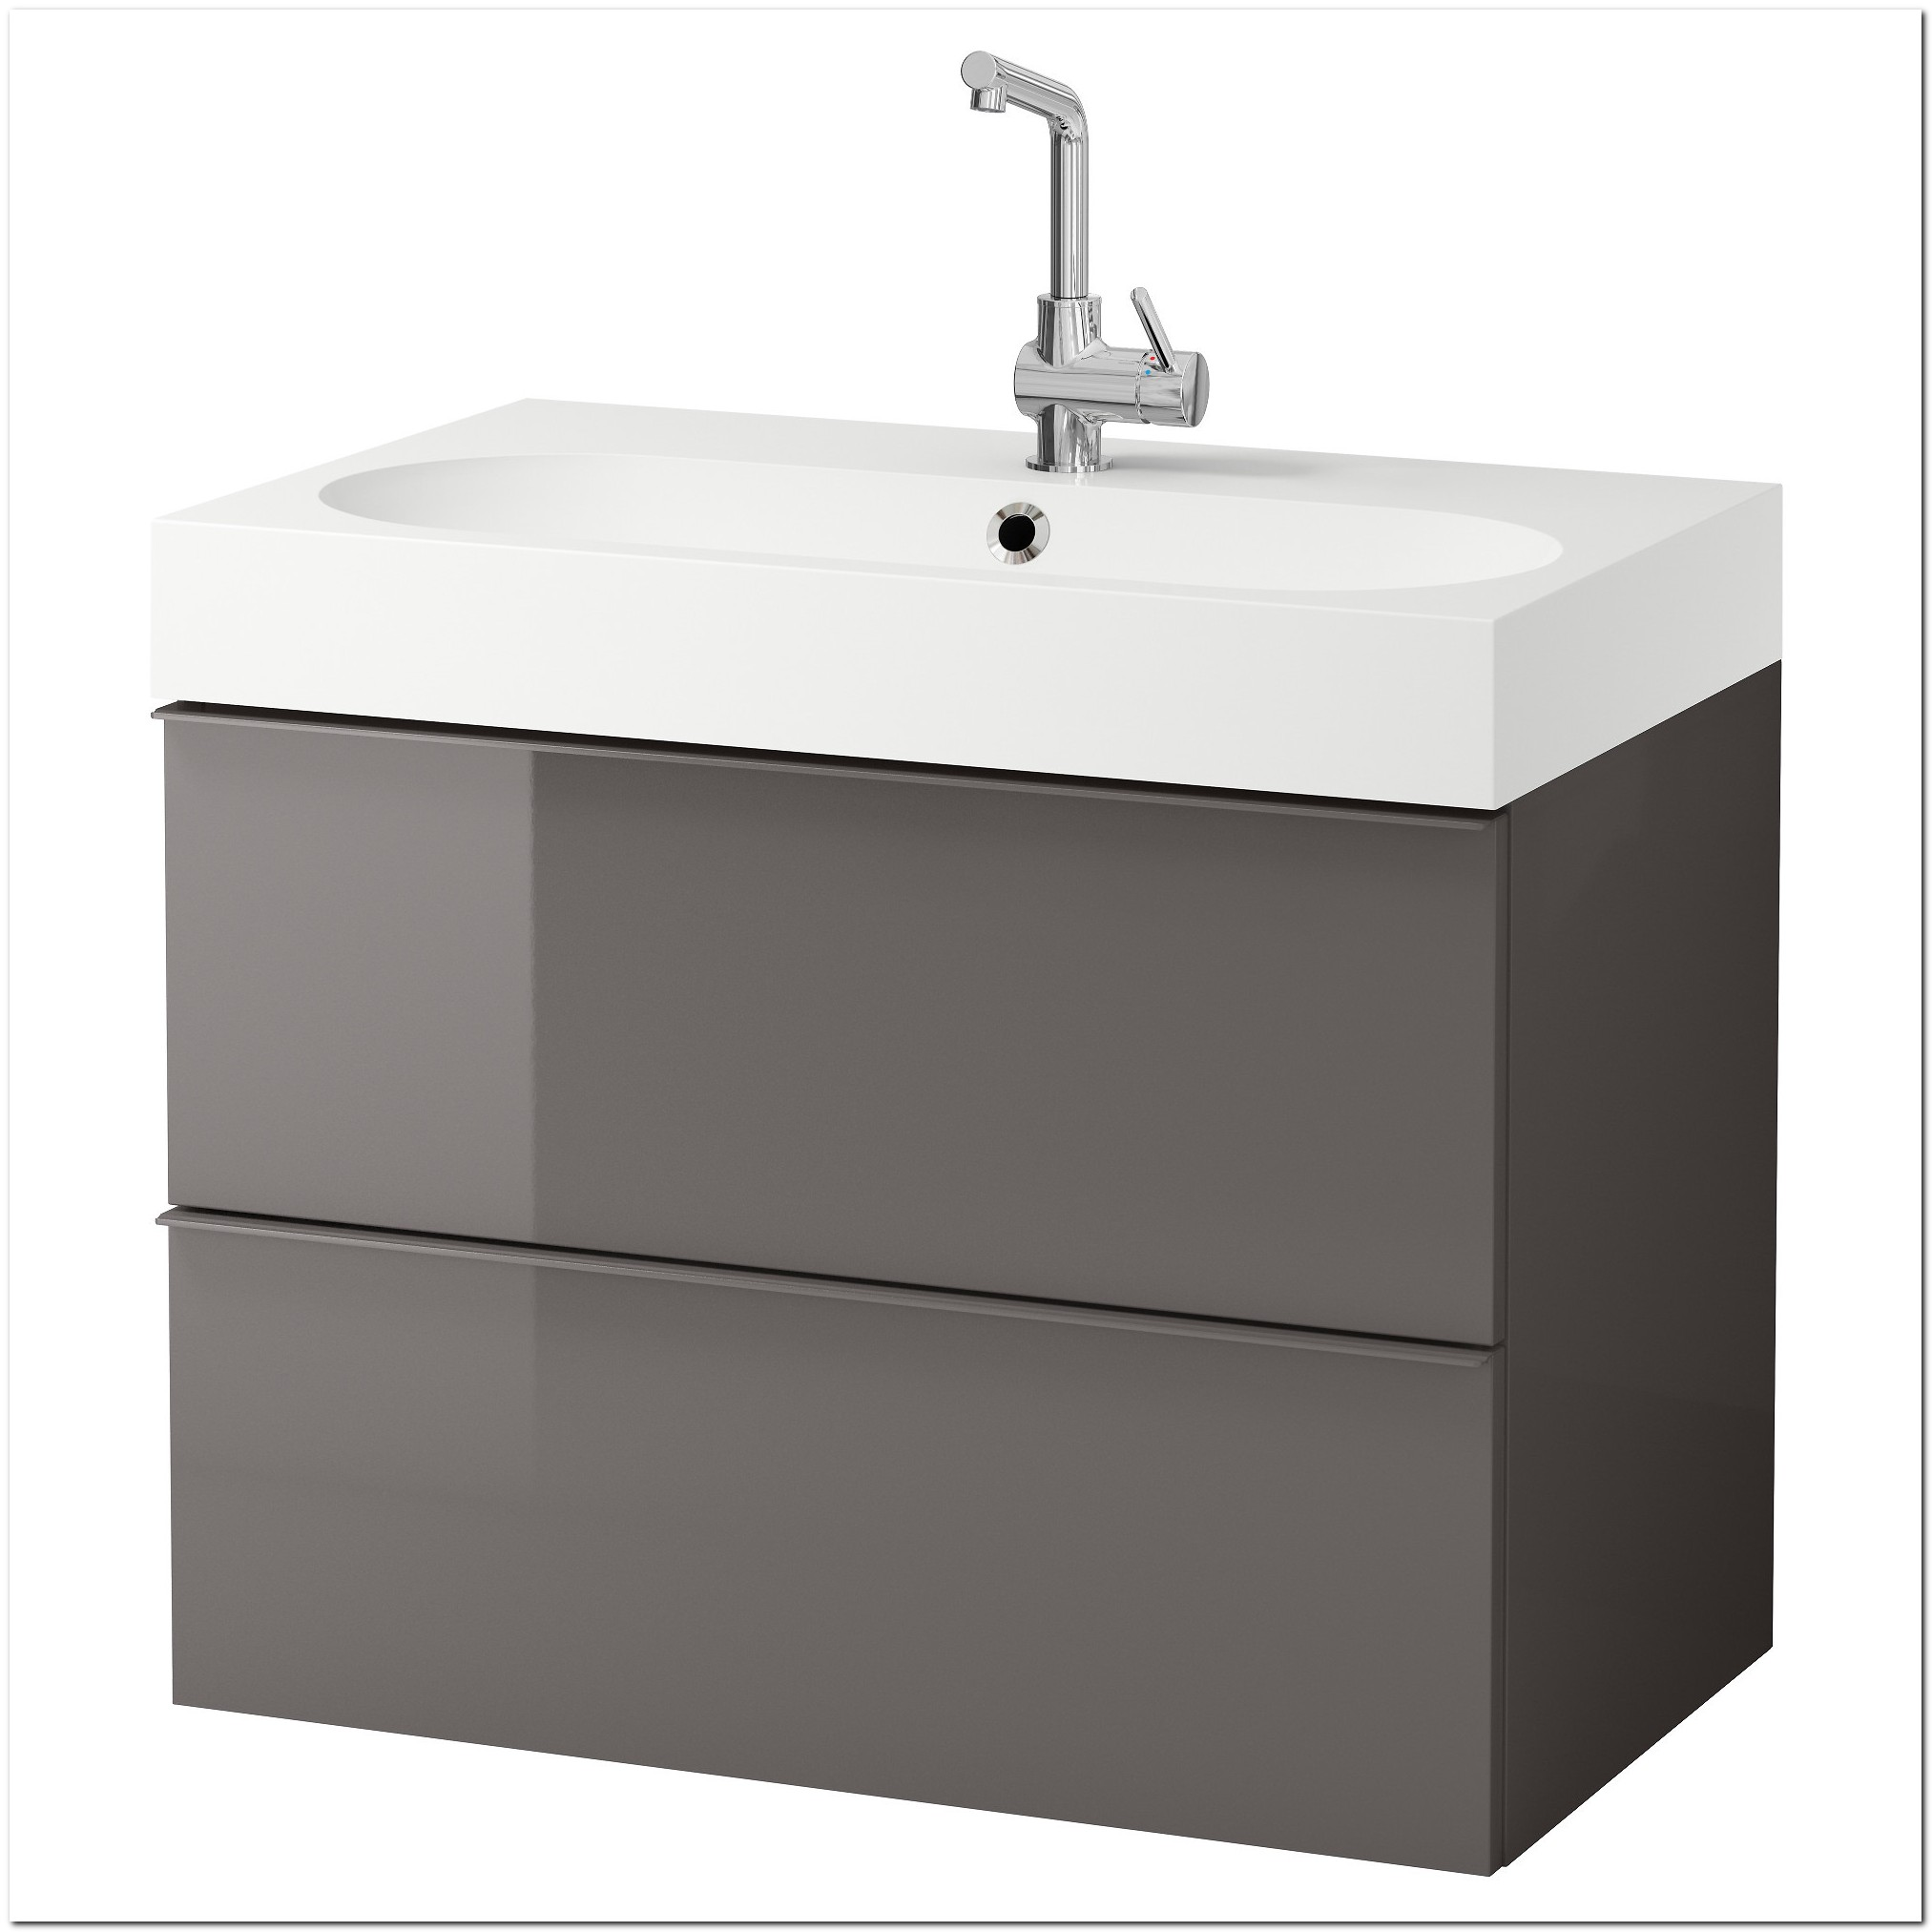 Bathroom Sink Cabinets With Drawers